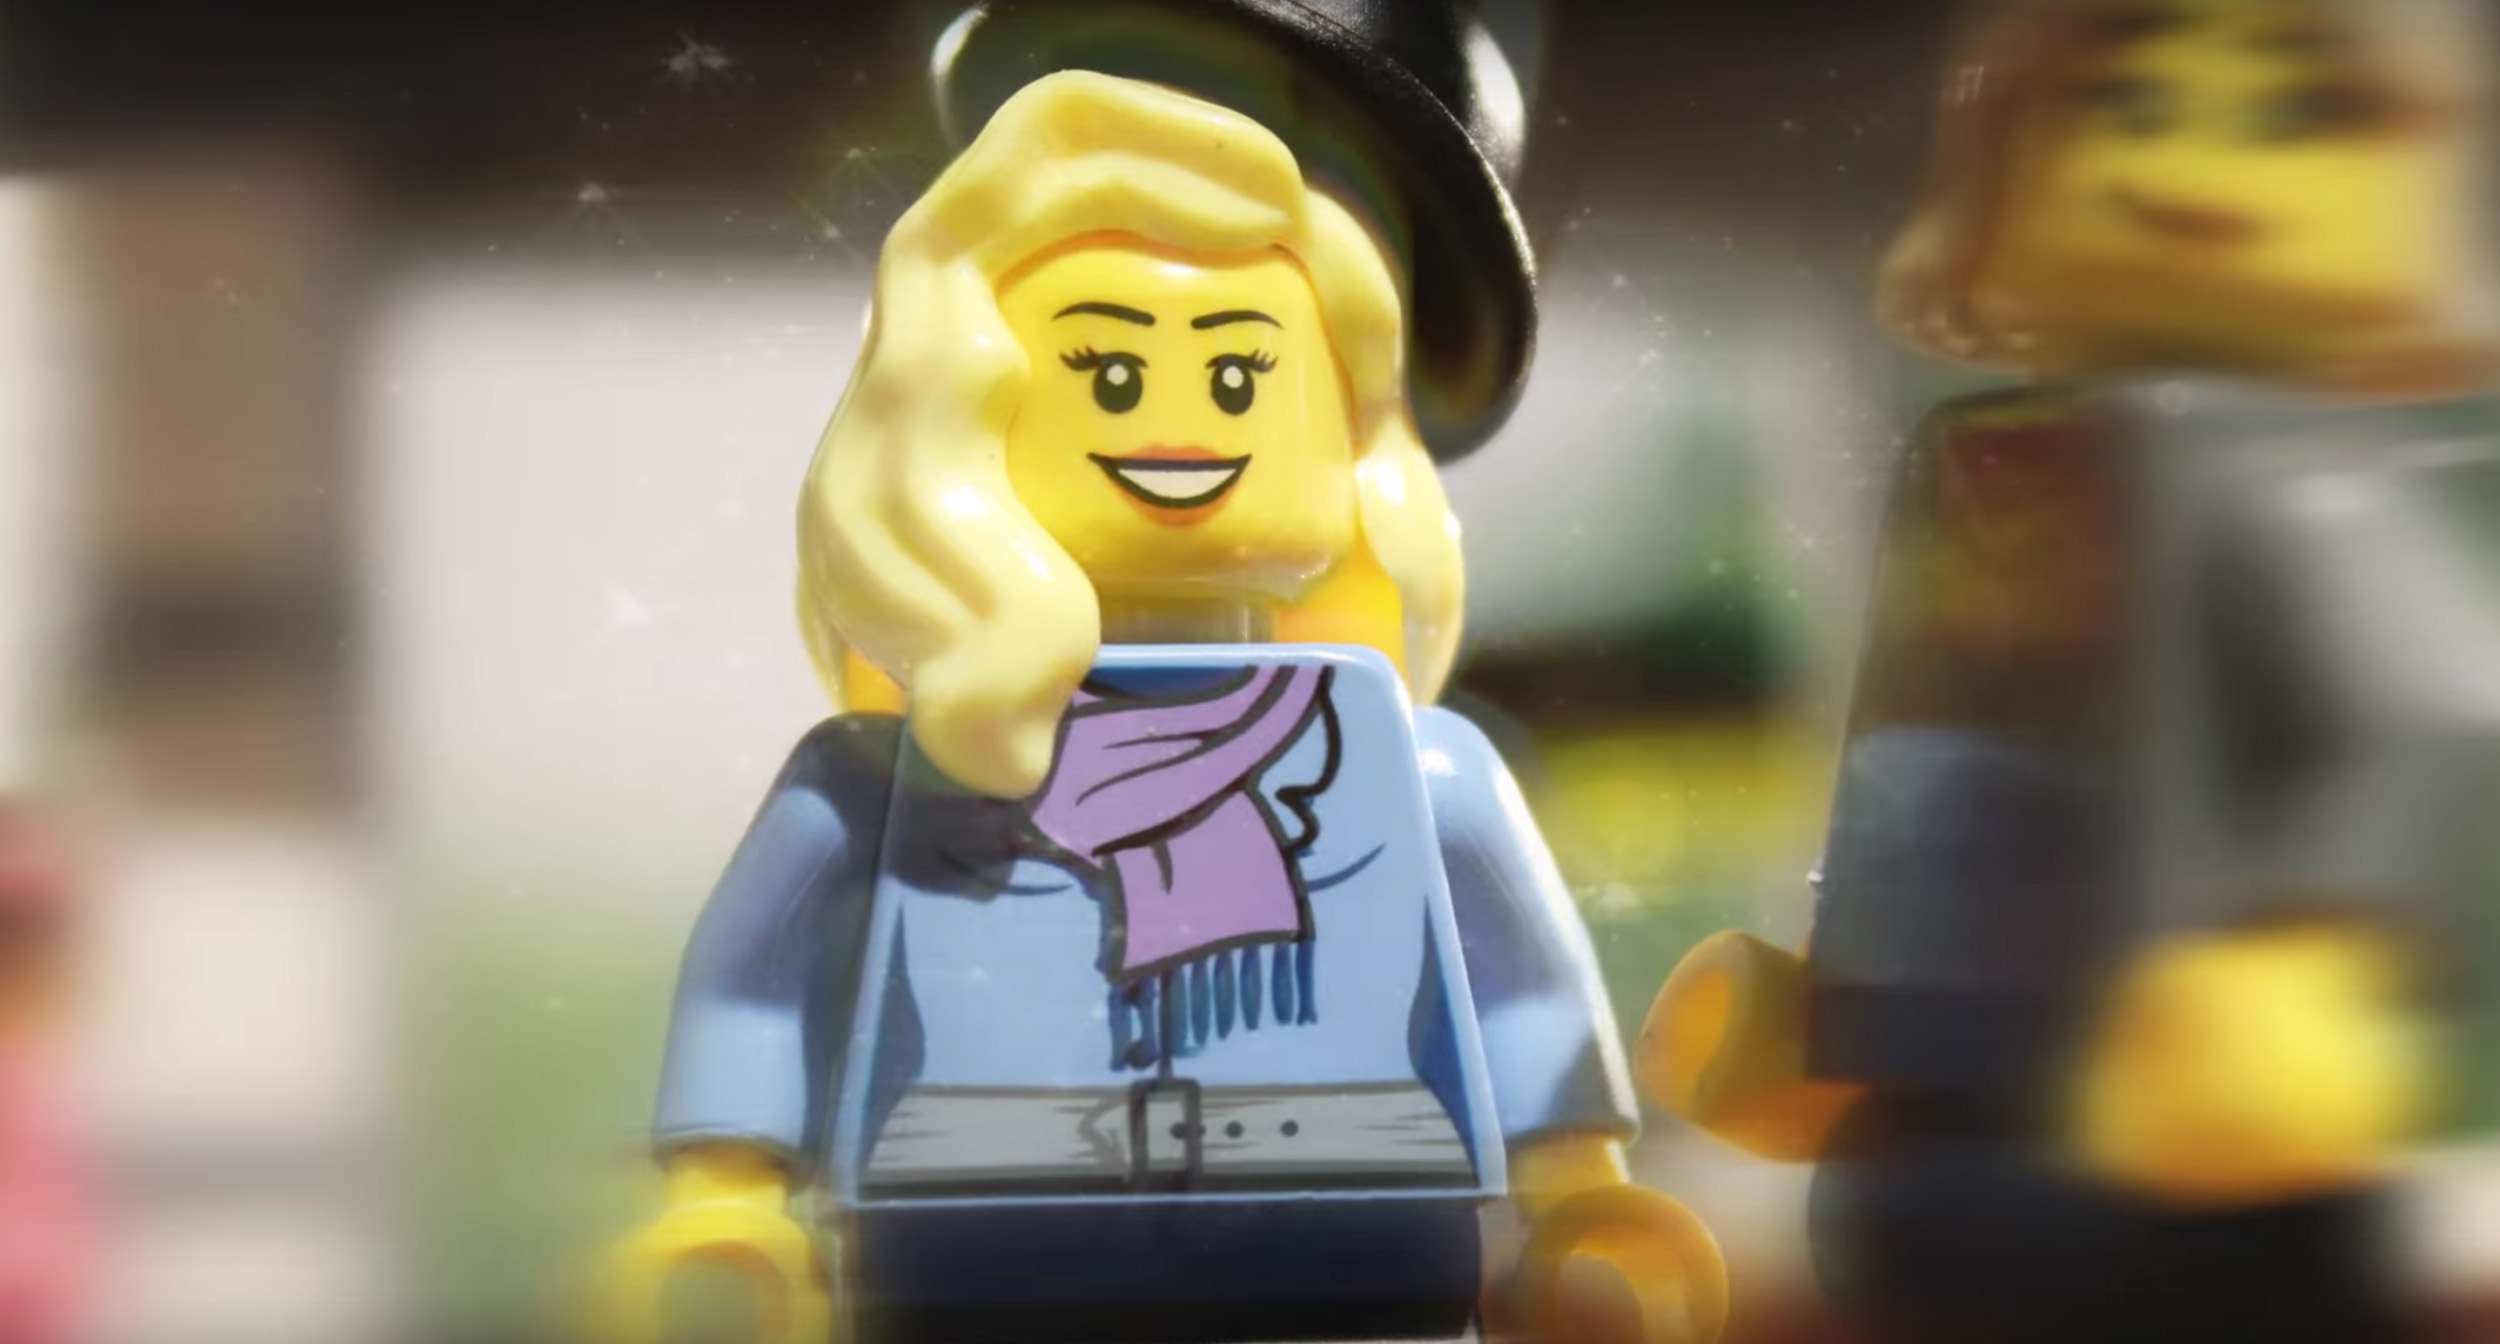 A Couple S Love Story Gets Turned Into A Lego Movie Time